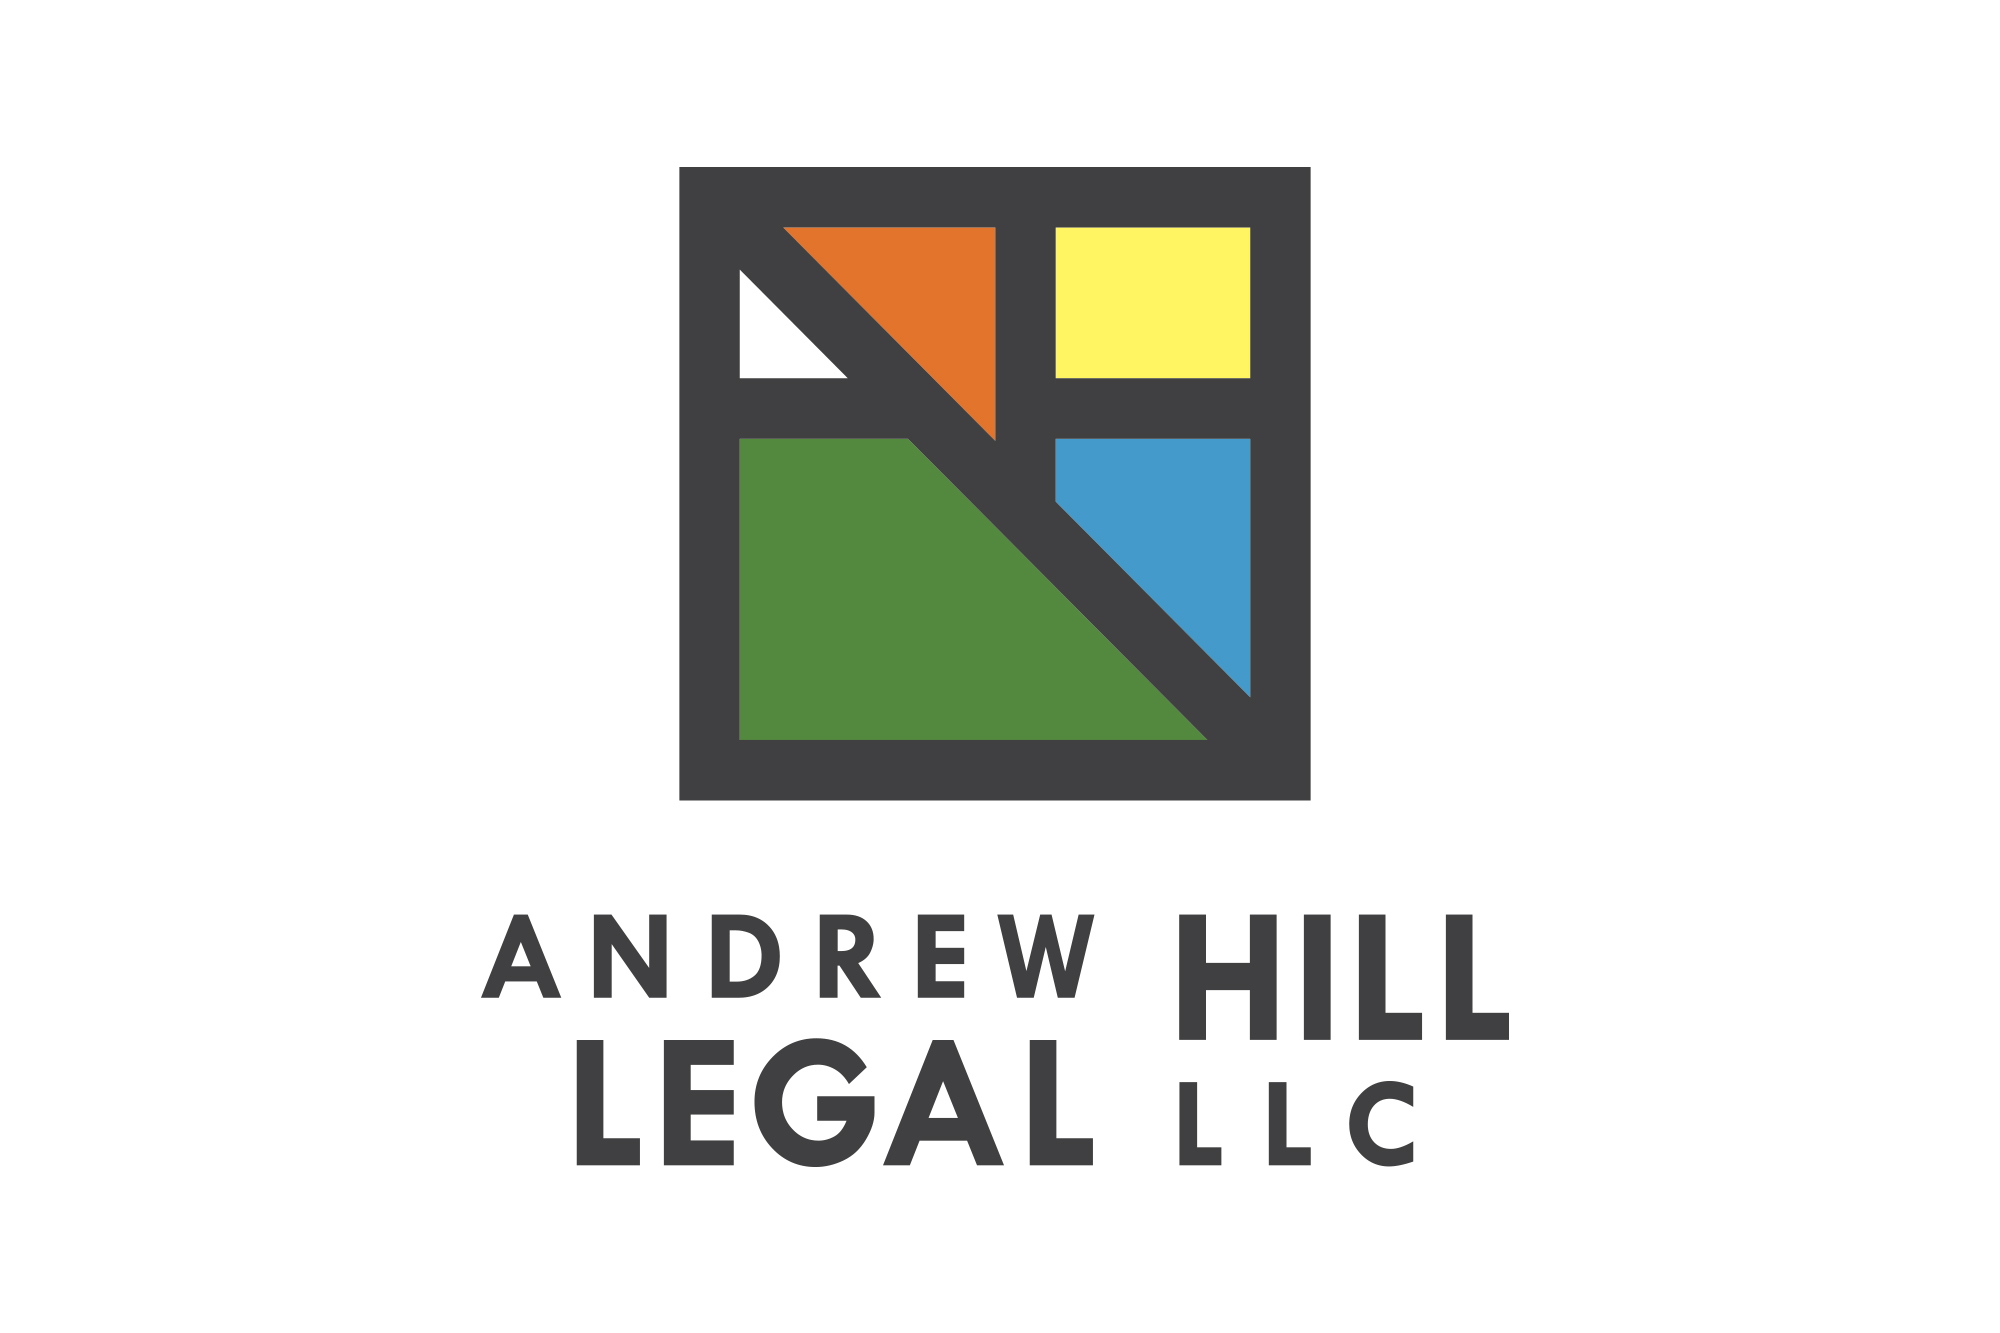 Andrew Hill Legal, LLC logo design